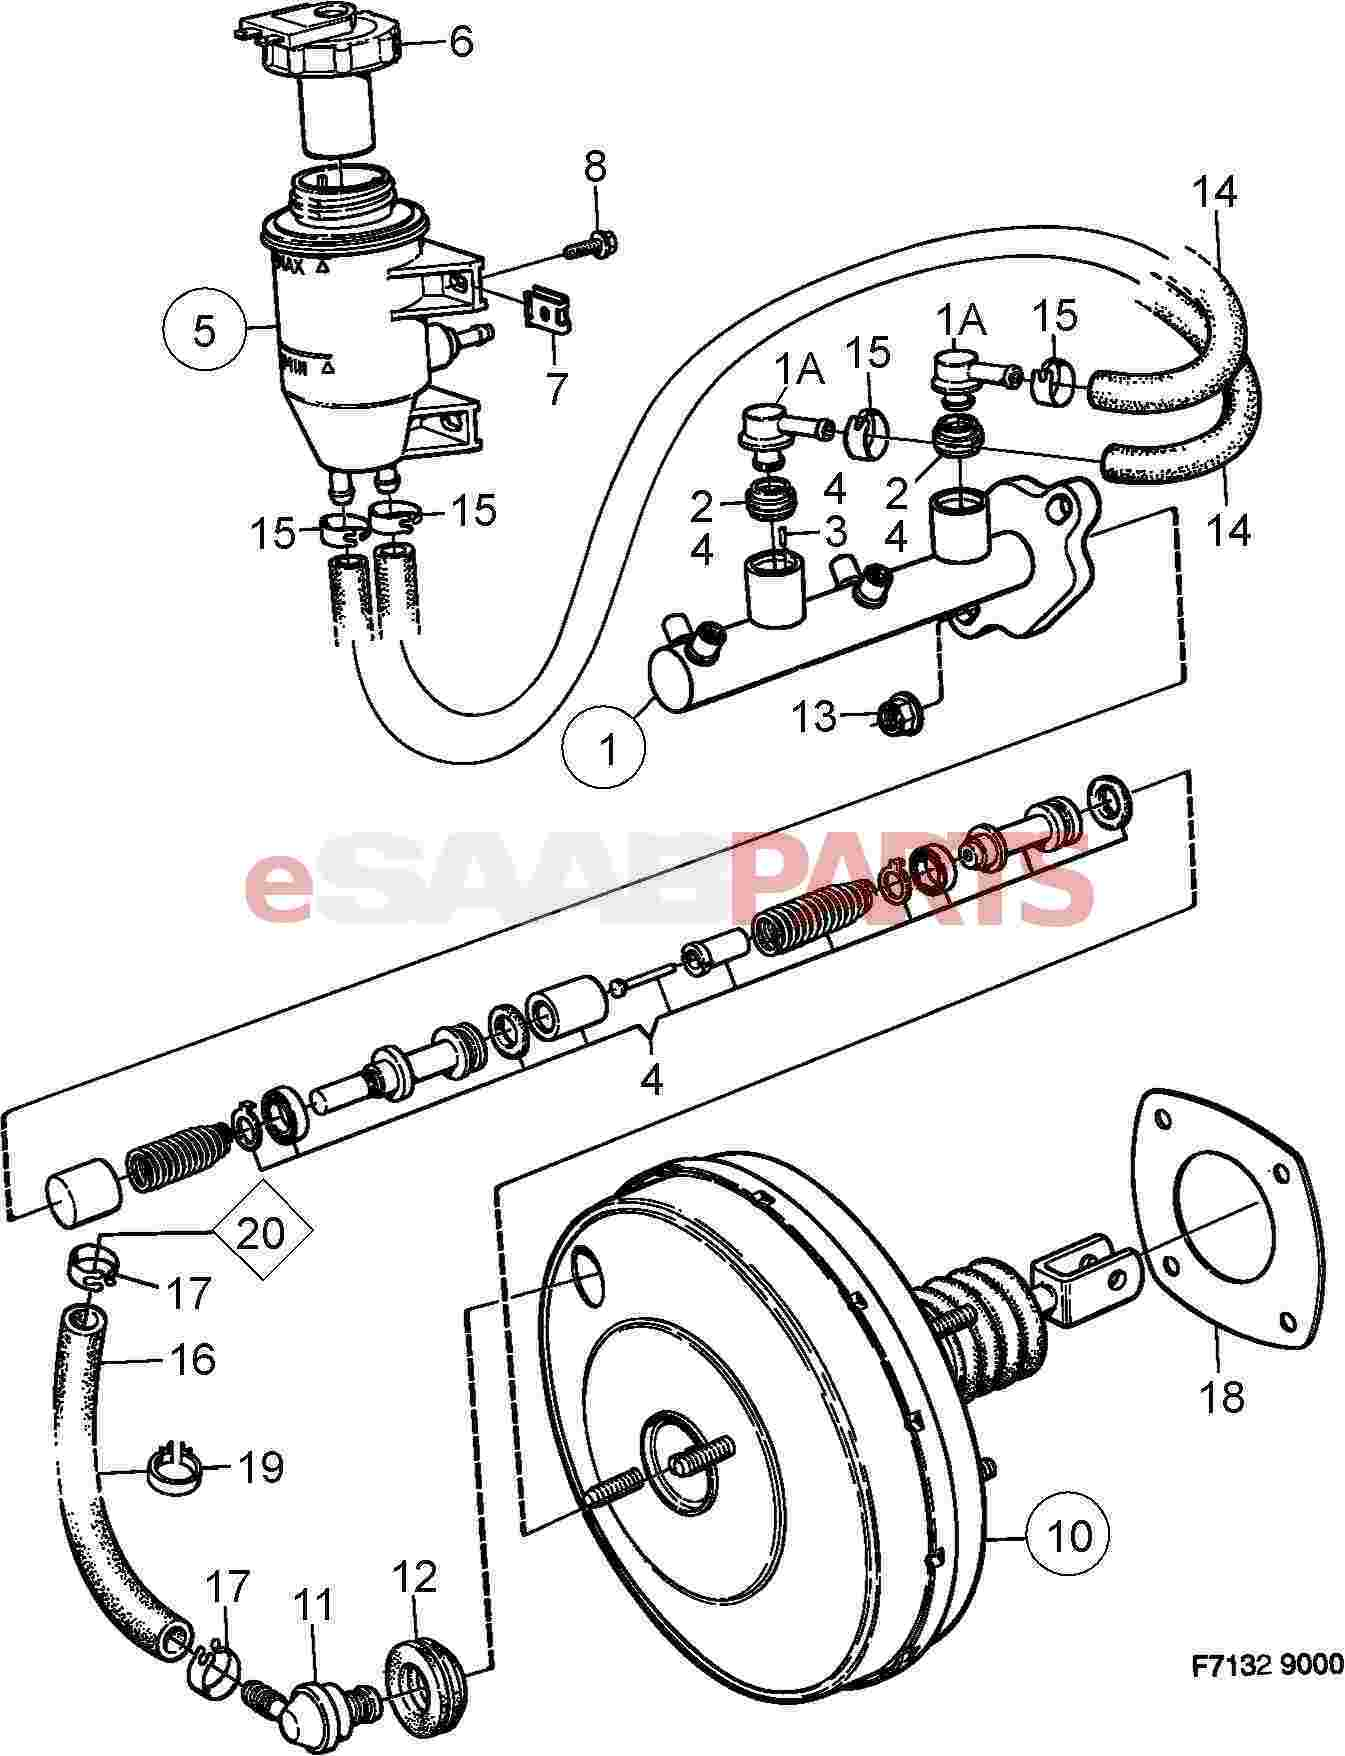 [DIAGRAM] Door Lock Wiring Diagram For 2008 Saturn FULL